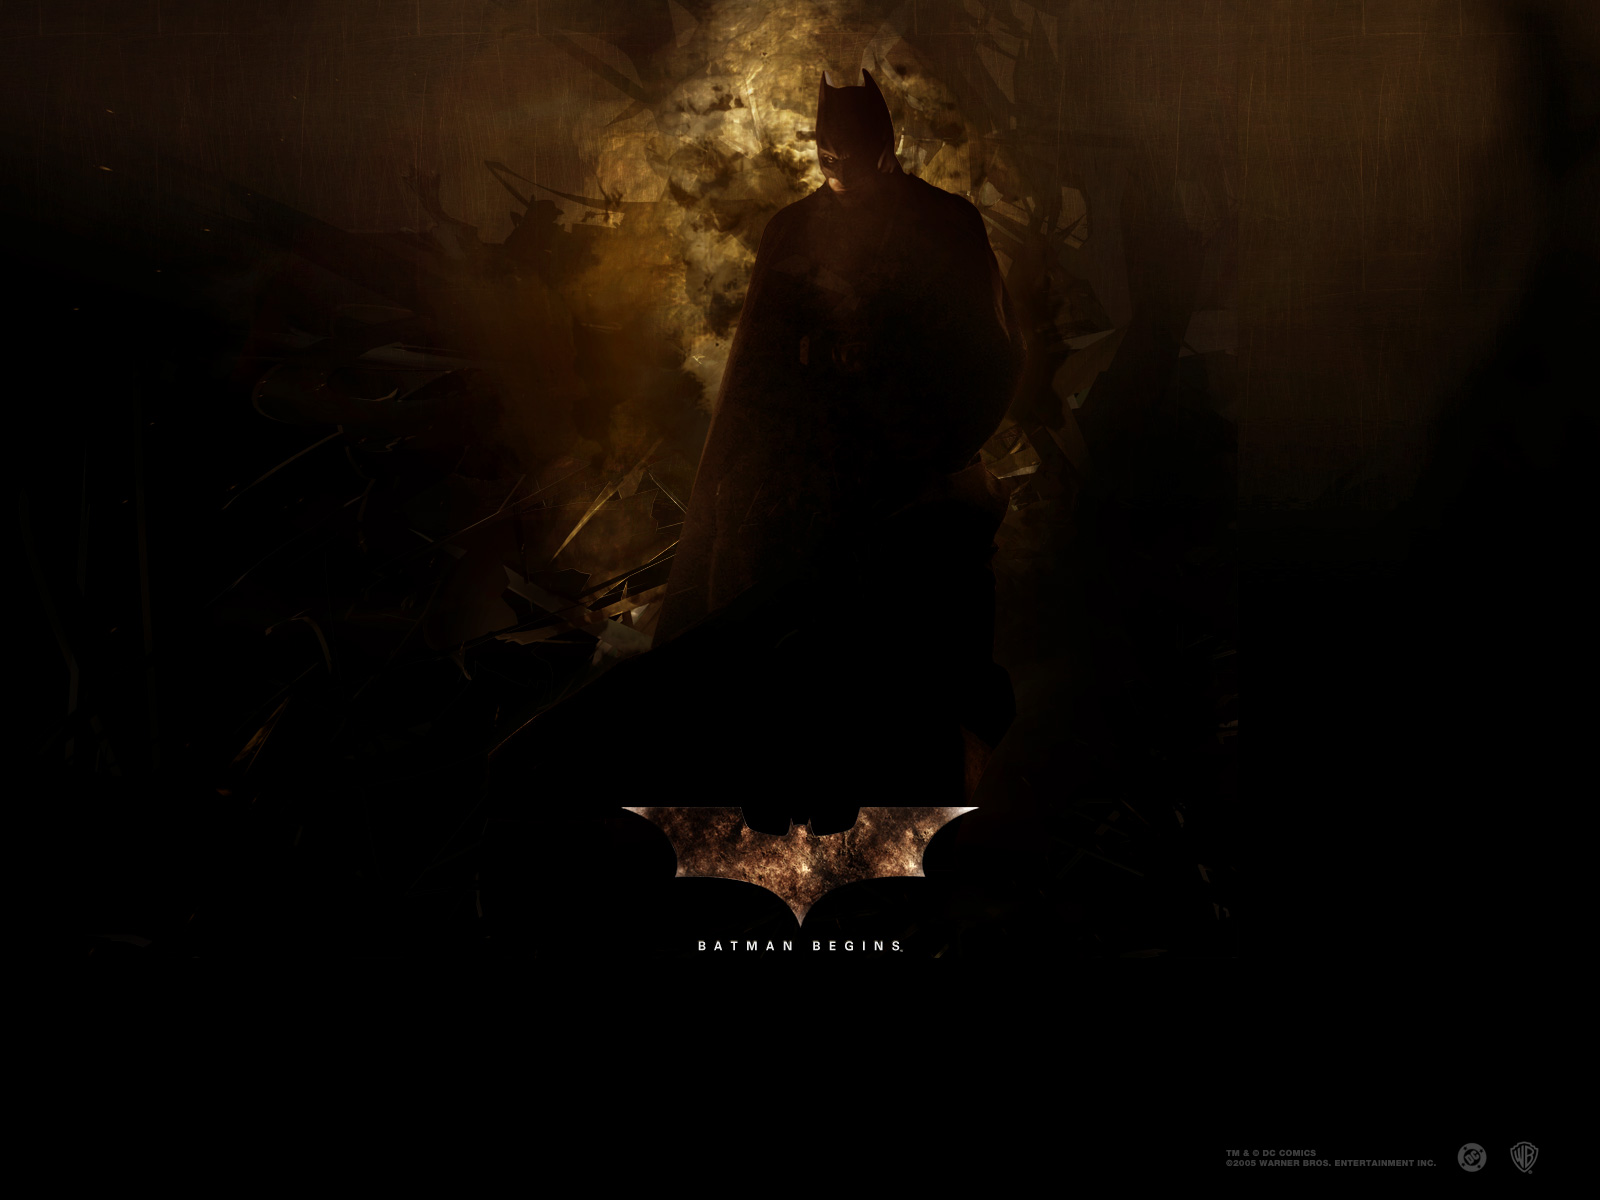 Wallpaper Bruce Wayne Batman begins